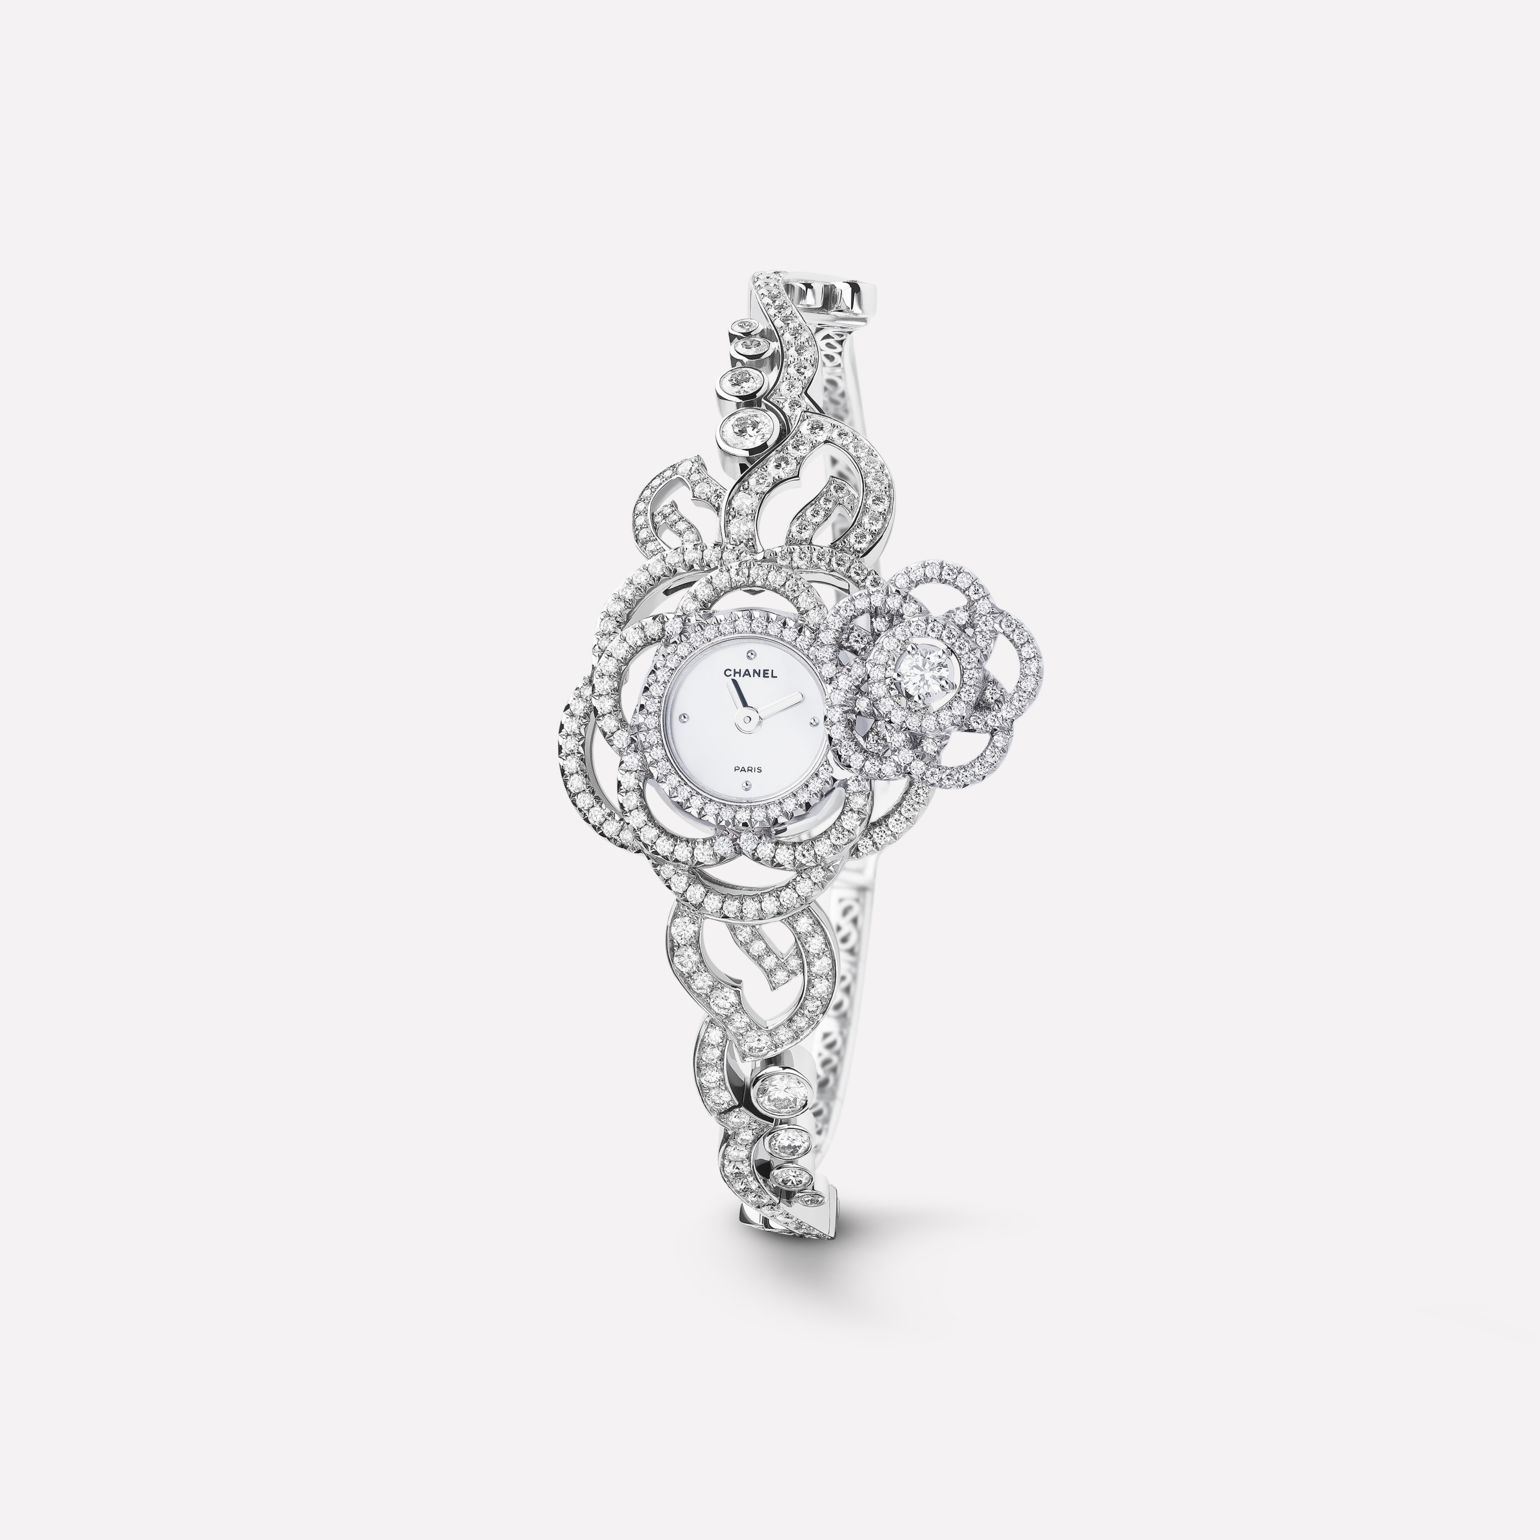 Camélia Jewelry Watch Secret watch with embroidered camellia motif in 18K white gold and diamonds with diamond bracelet - Medium version